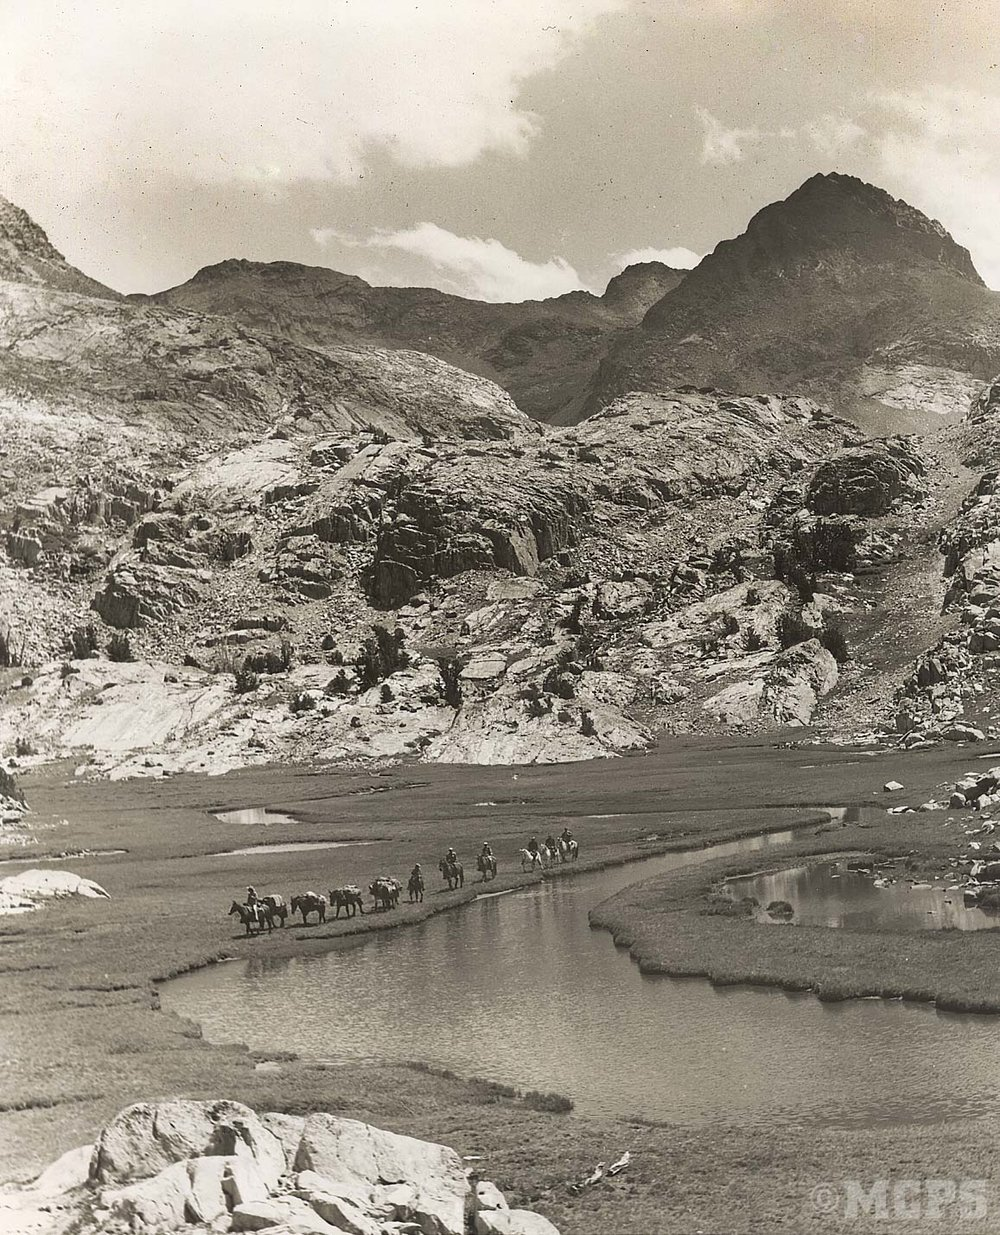 Packmules and guests travel along upper Fish Creek in the wilderness along the Sierra Divide